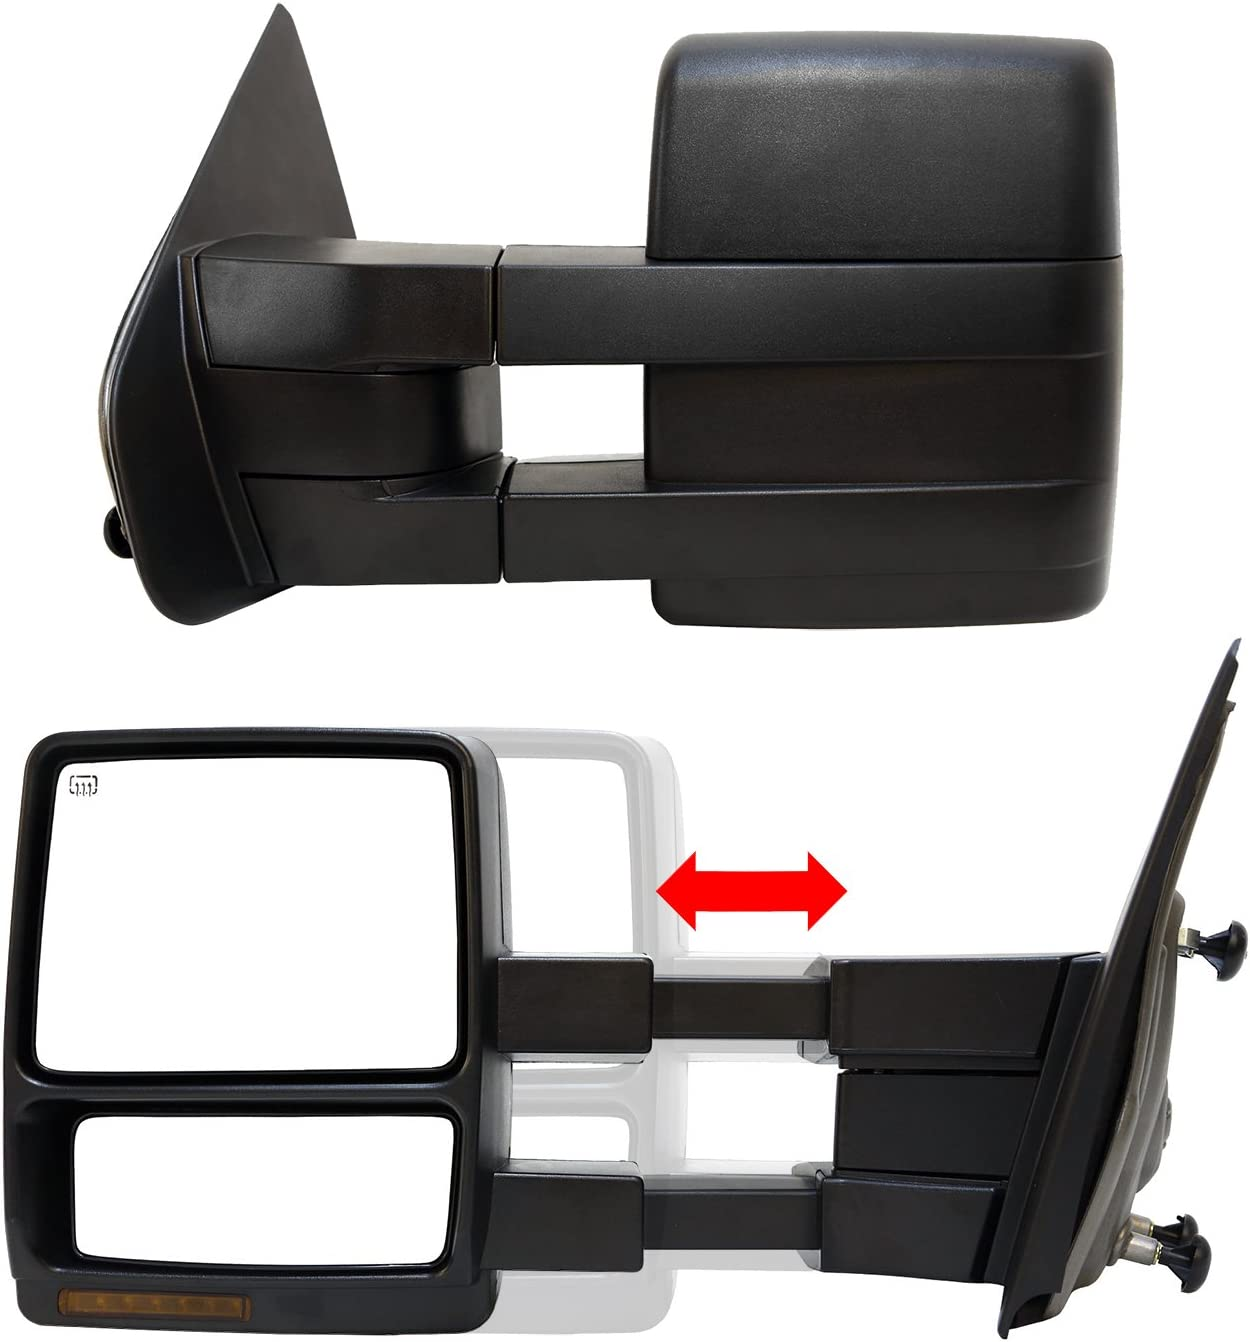 Black Pair Set Heated Turn Signals Puddle Lights Paragon Telescopic Towing Mirrors for 2007-14 Ford F150 Powered